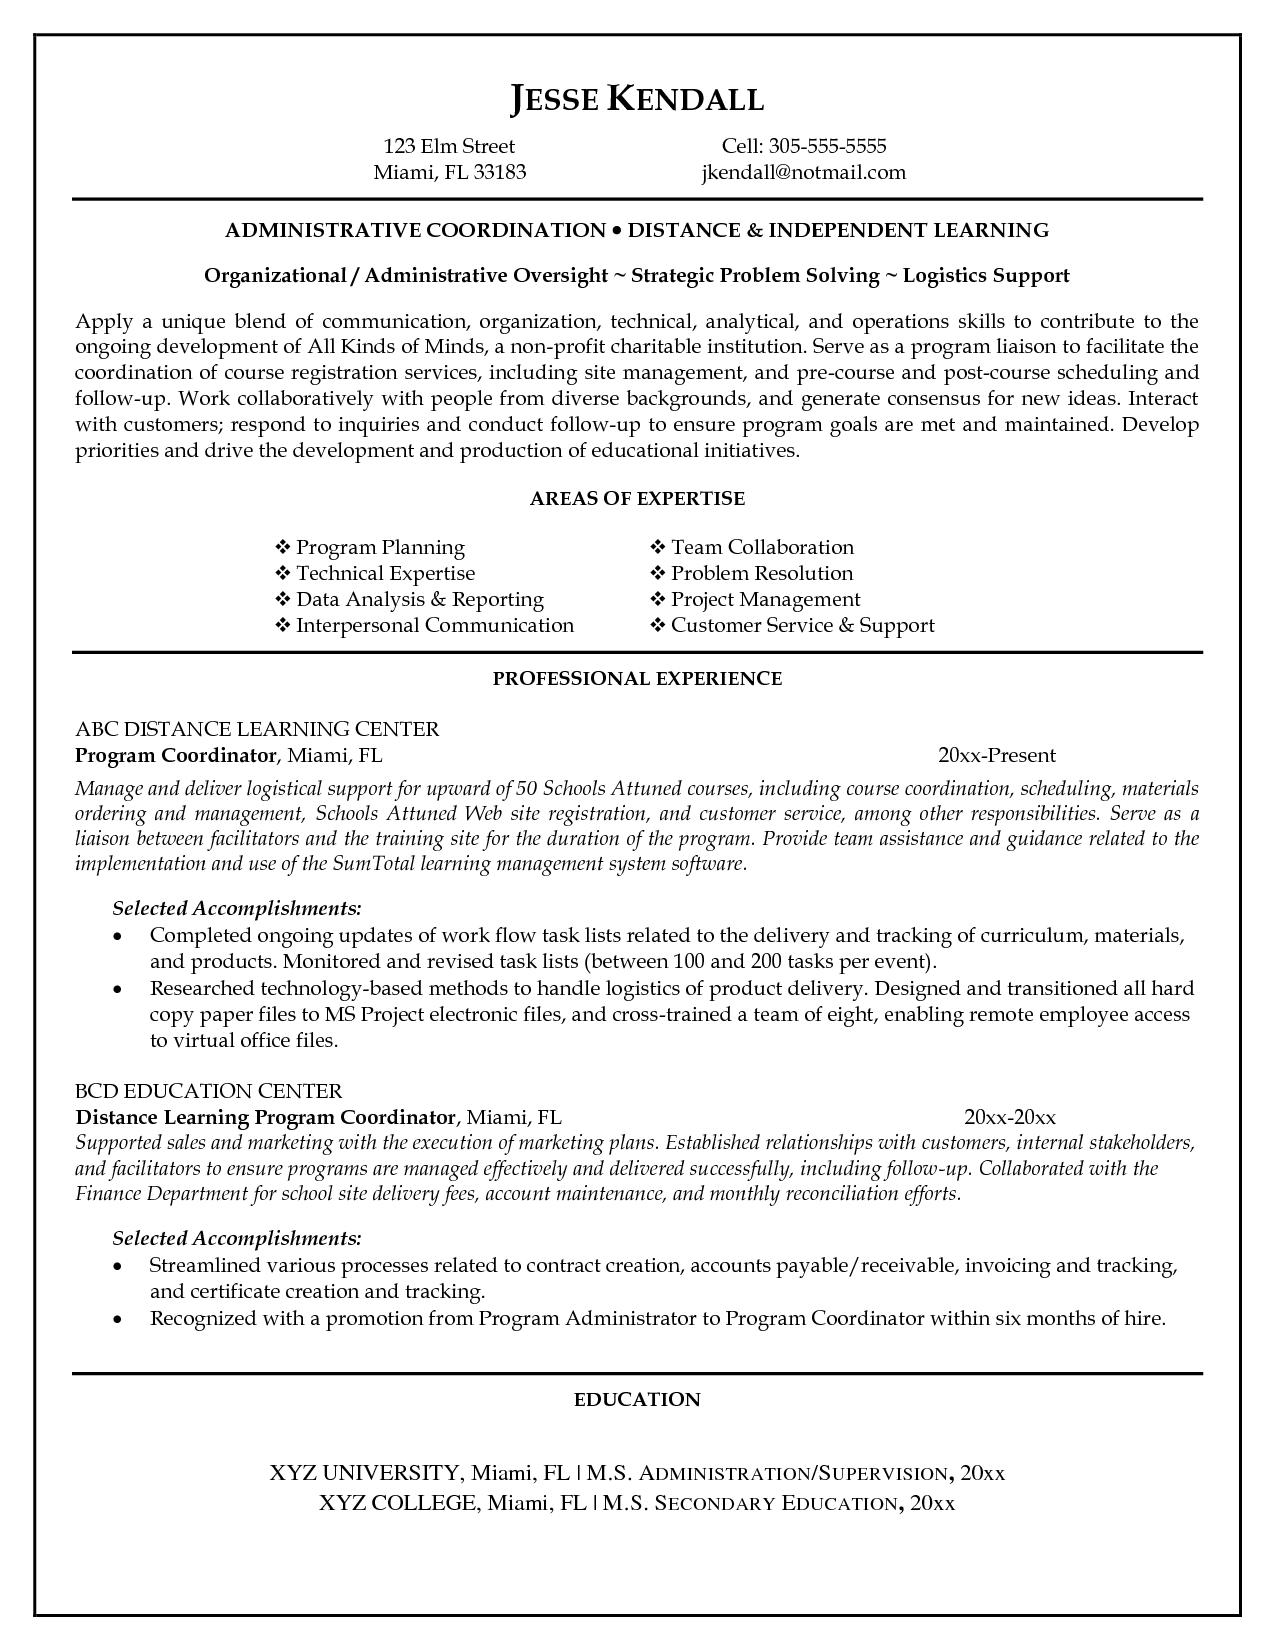 Attractive Program Coordinator Resume   Http://www.resumecareer.info/program  In Program Coordinator Resume